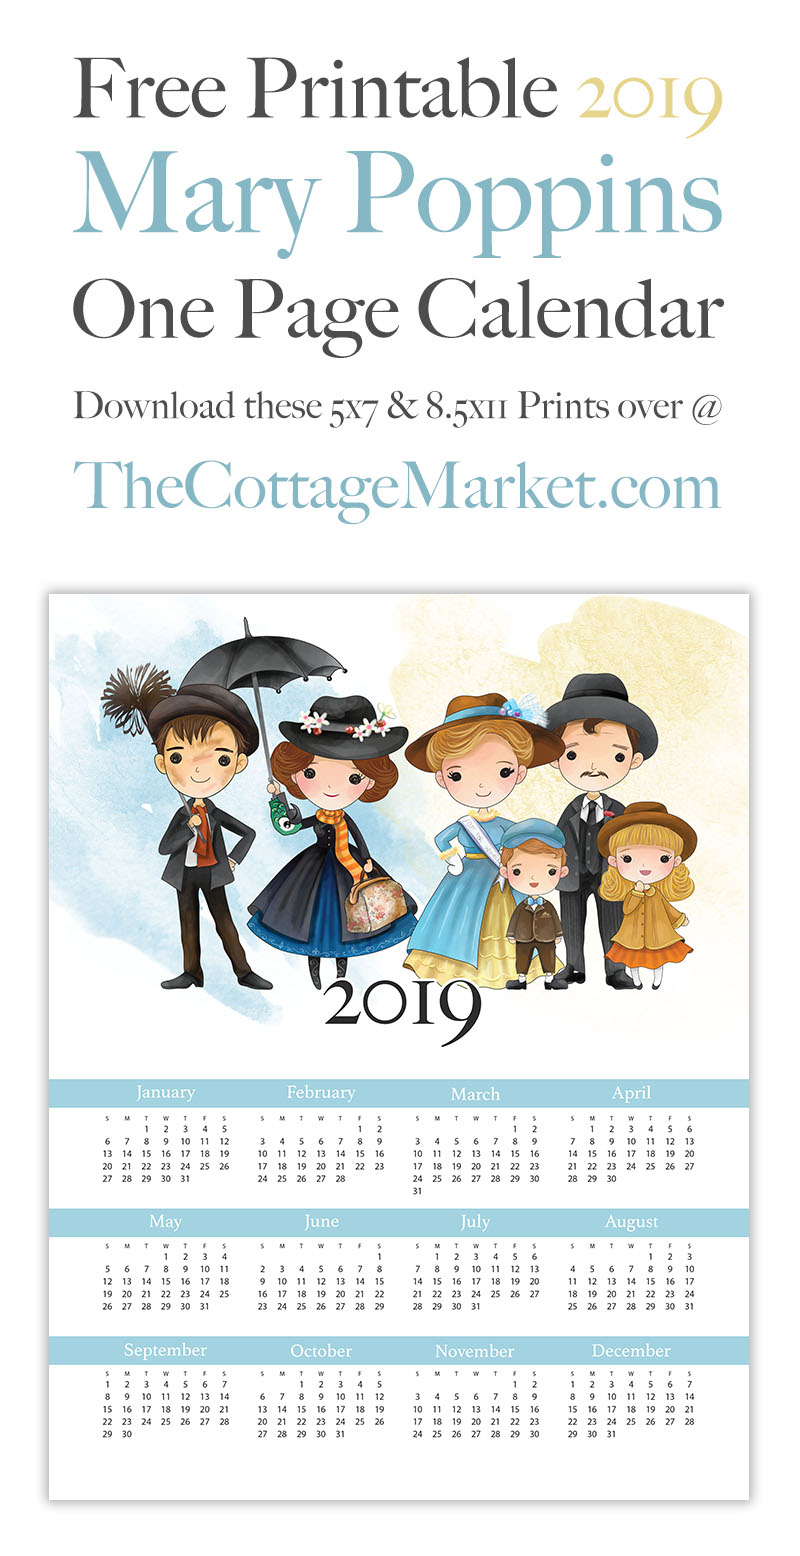 https://thecottagemarket.com/wp-content/uploads/2018/11/TCM-MaryPoppins-OnePage-2019-Calendar-T-1.jpg